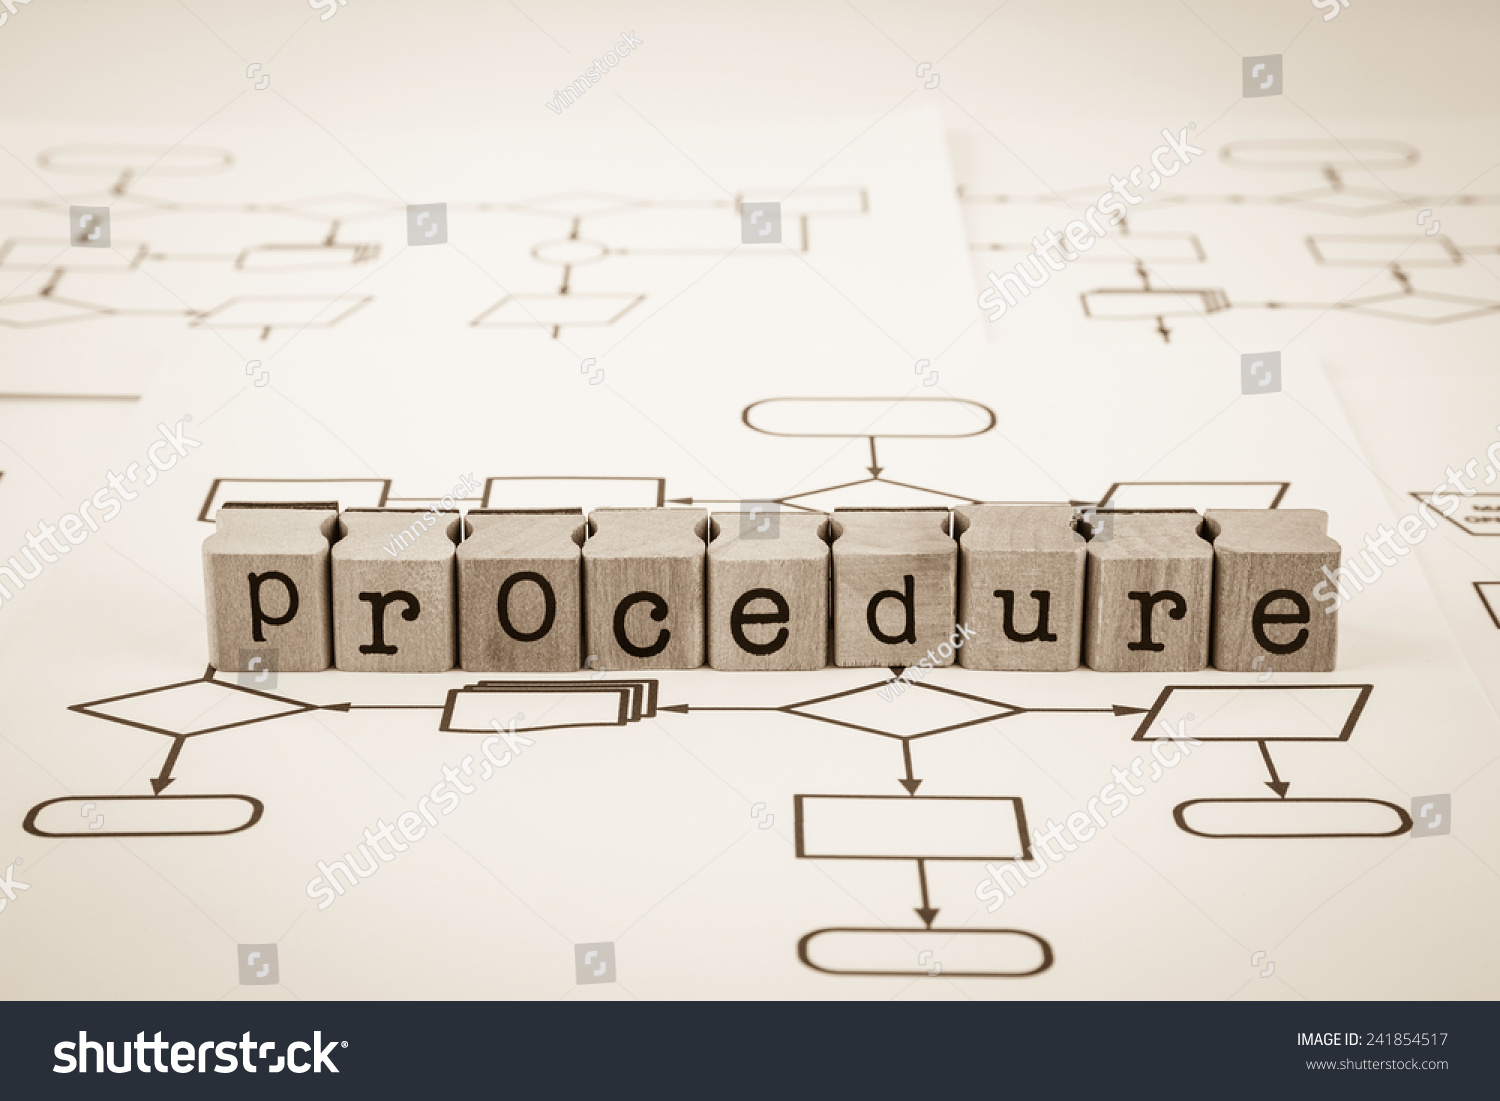 Procedure Word On Rubber Wood Stamps Stock Photo Edit Now Process Flow Diagram Place Blank System Analysis Charts Sepia